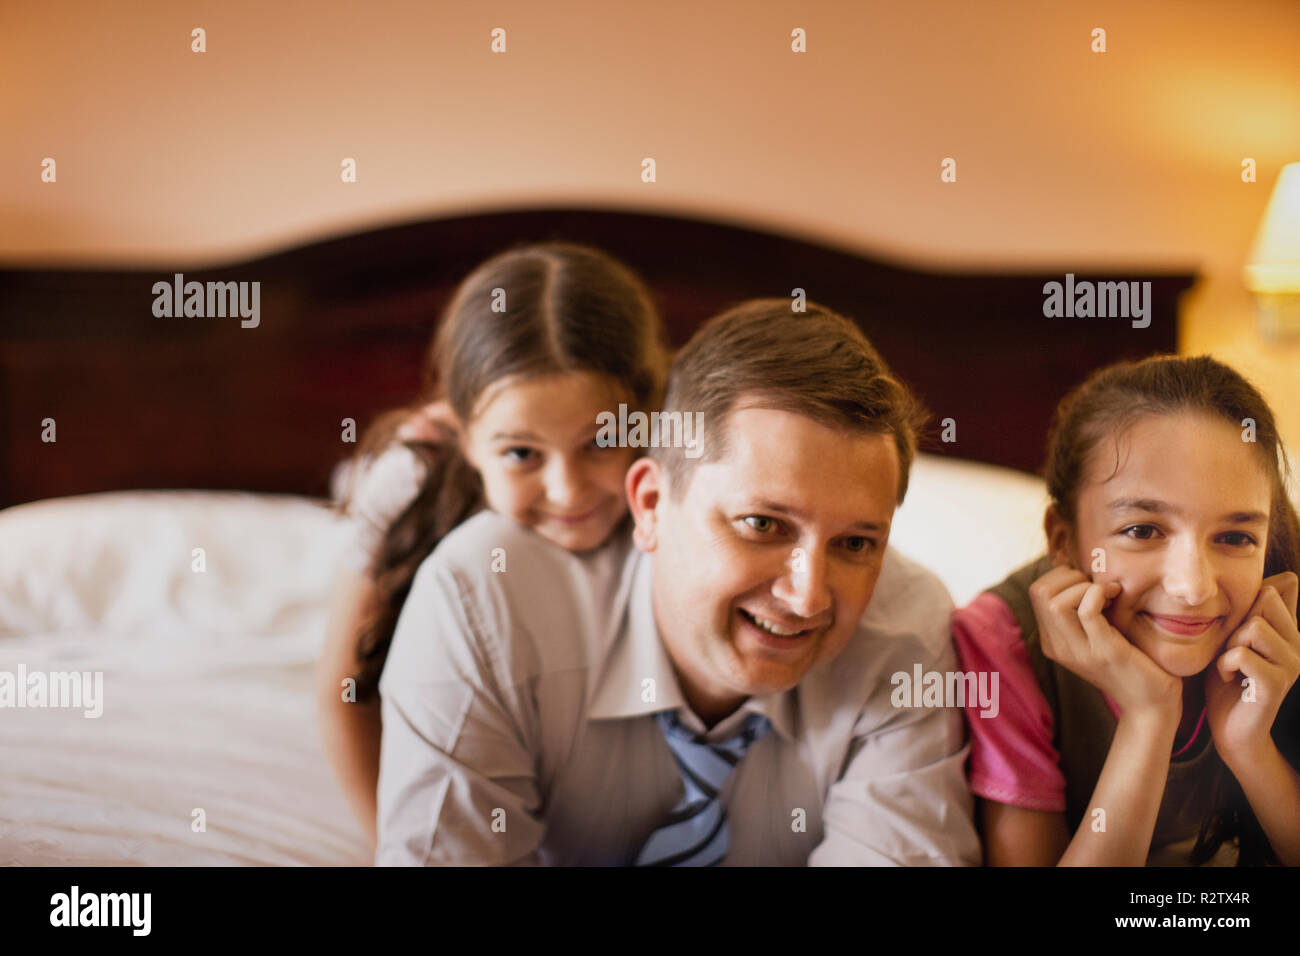 Two girls and their father relaxing on hotel bed. - Stock Image